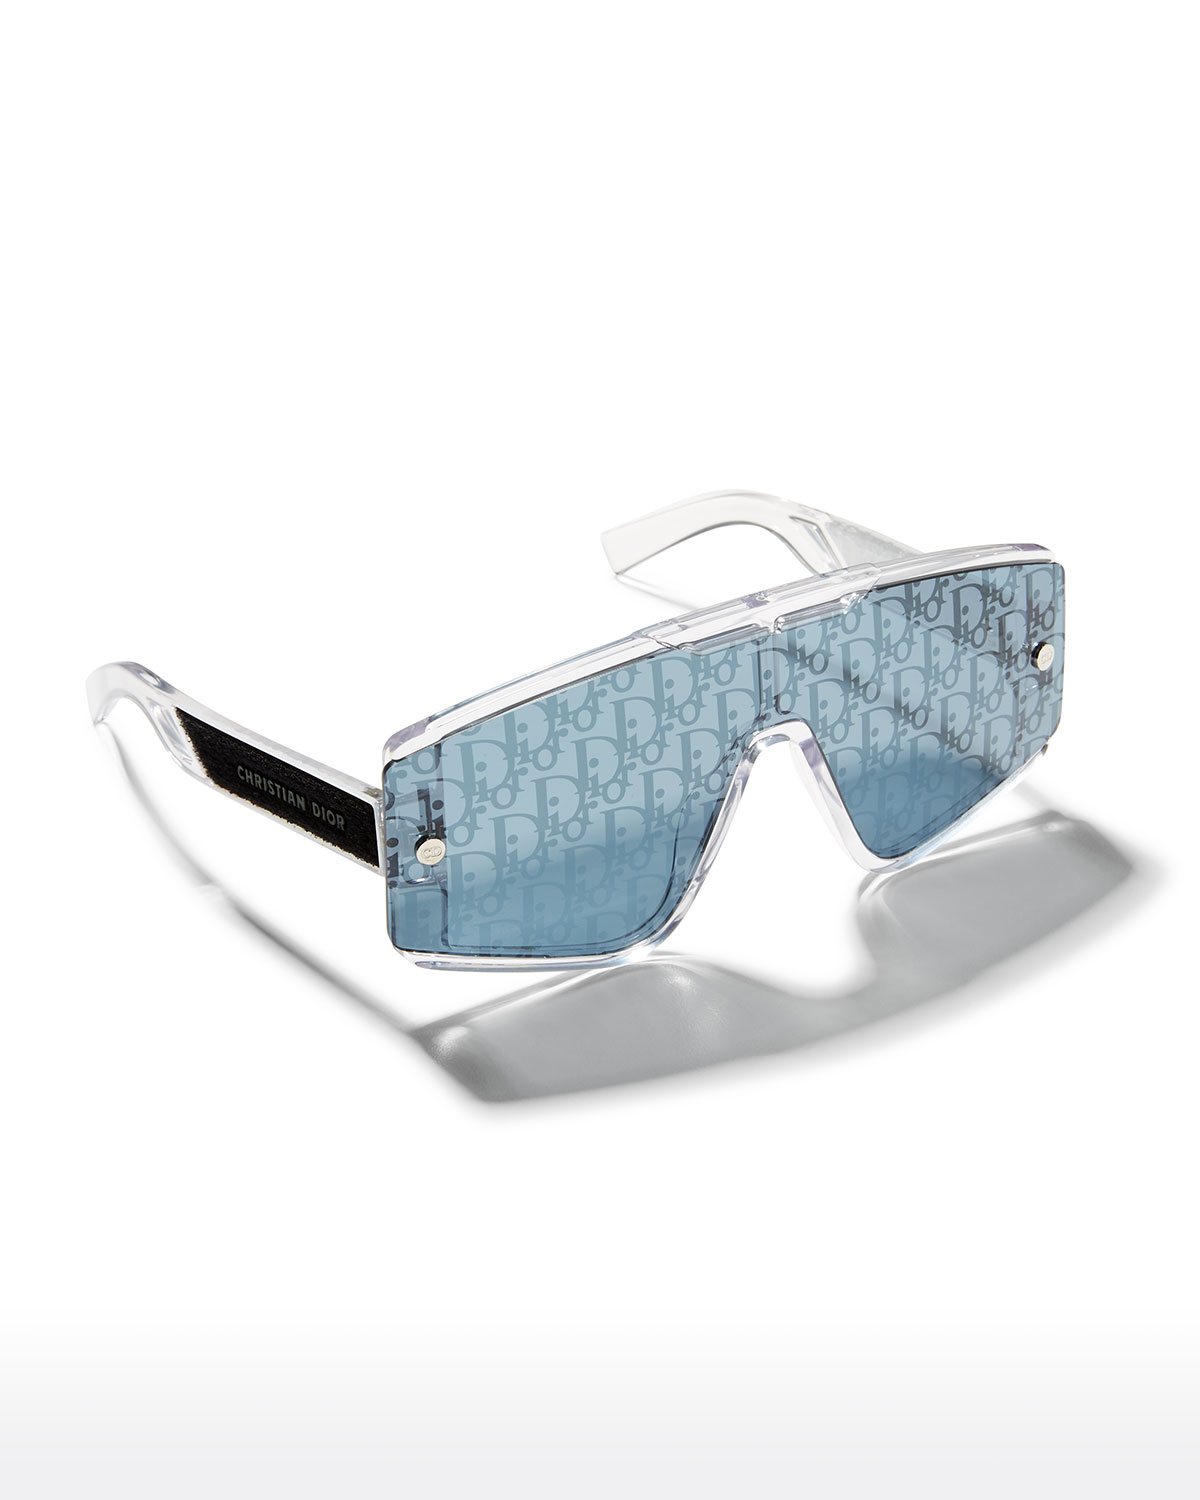 xtrem MU Shield Sunglasses with Interchangeable Lenses